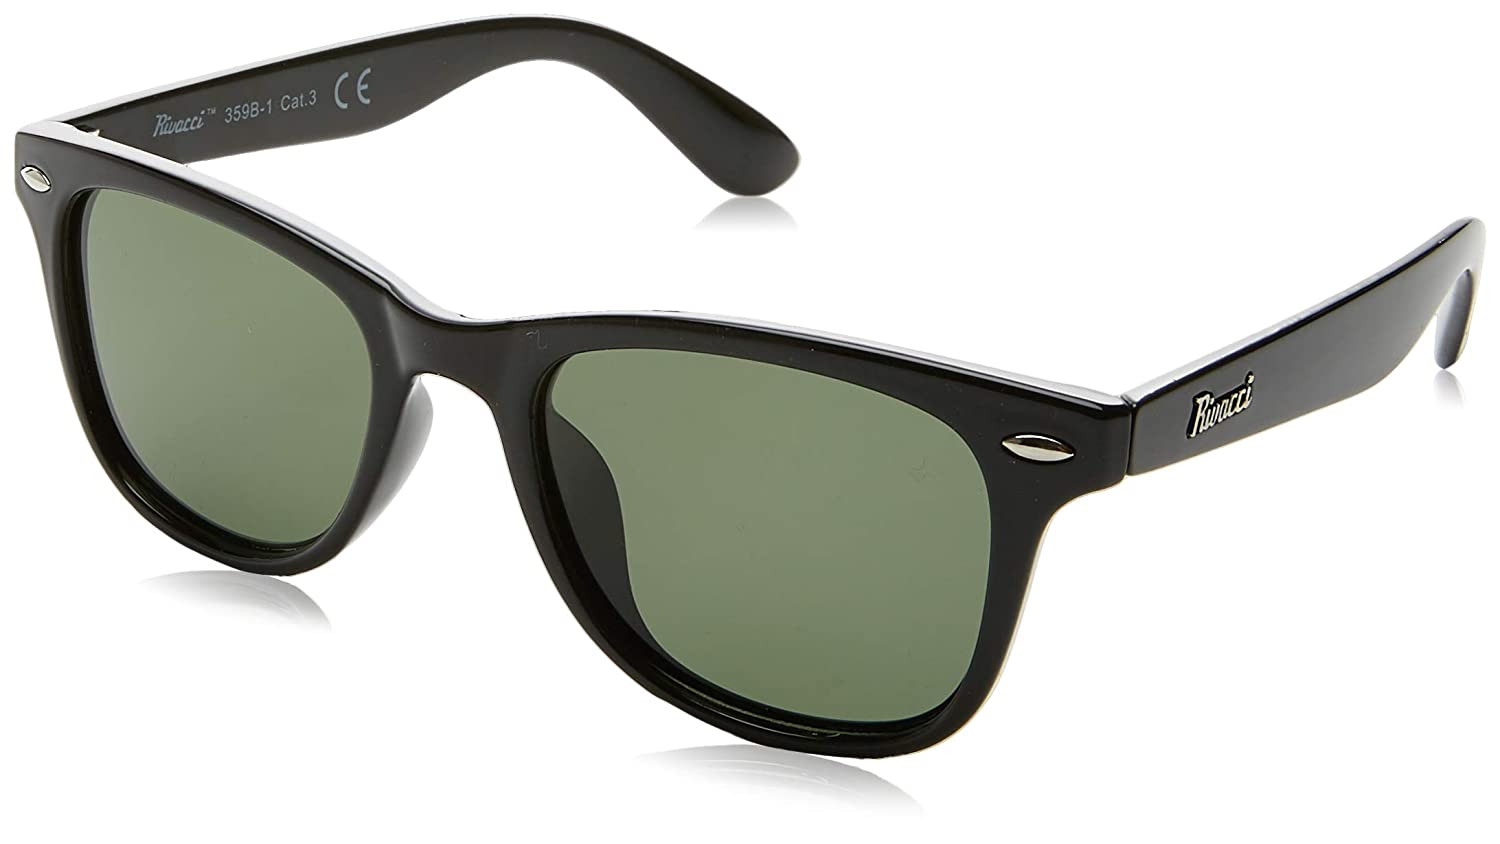 9171ba337af Rivacci VINTAGE Mens   Womens POLARIZED Wayfarer Sunglasses - Best TAC  DRIVING GLASSES - RETRO Shades for Men   Women - Black Green Grey Lens at  Amazon ...